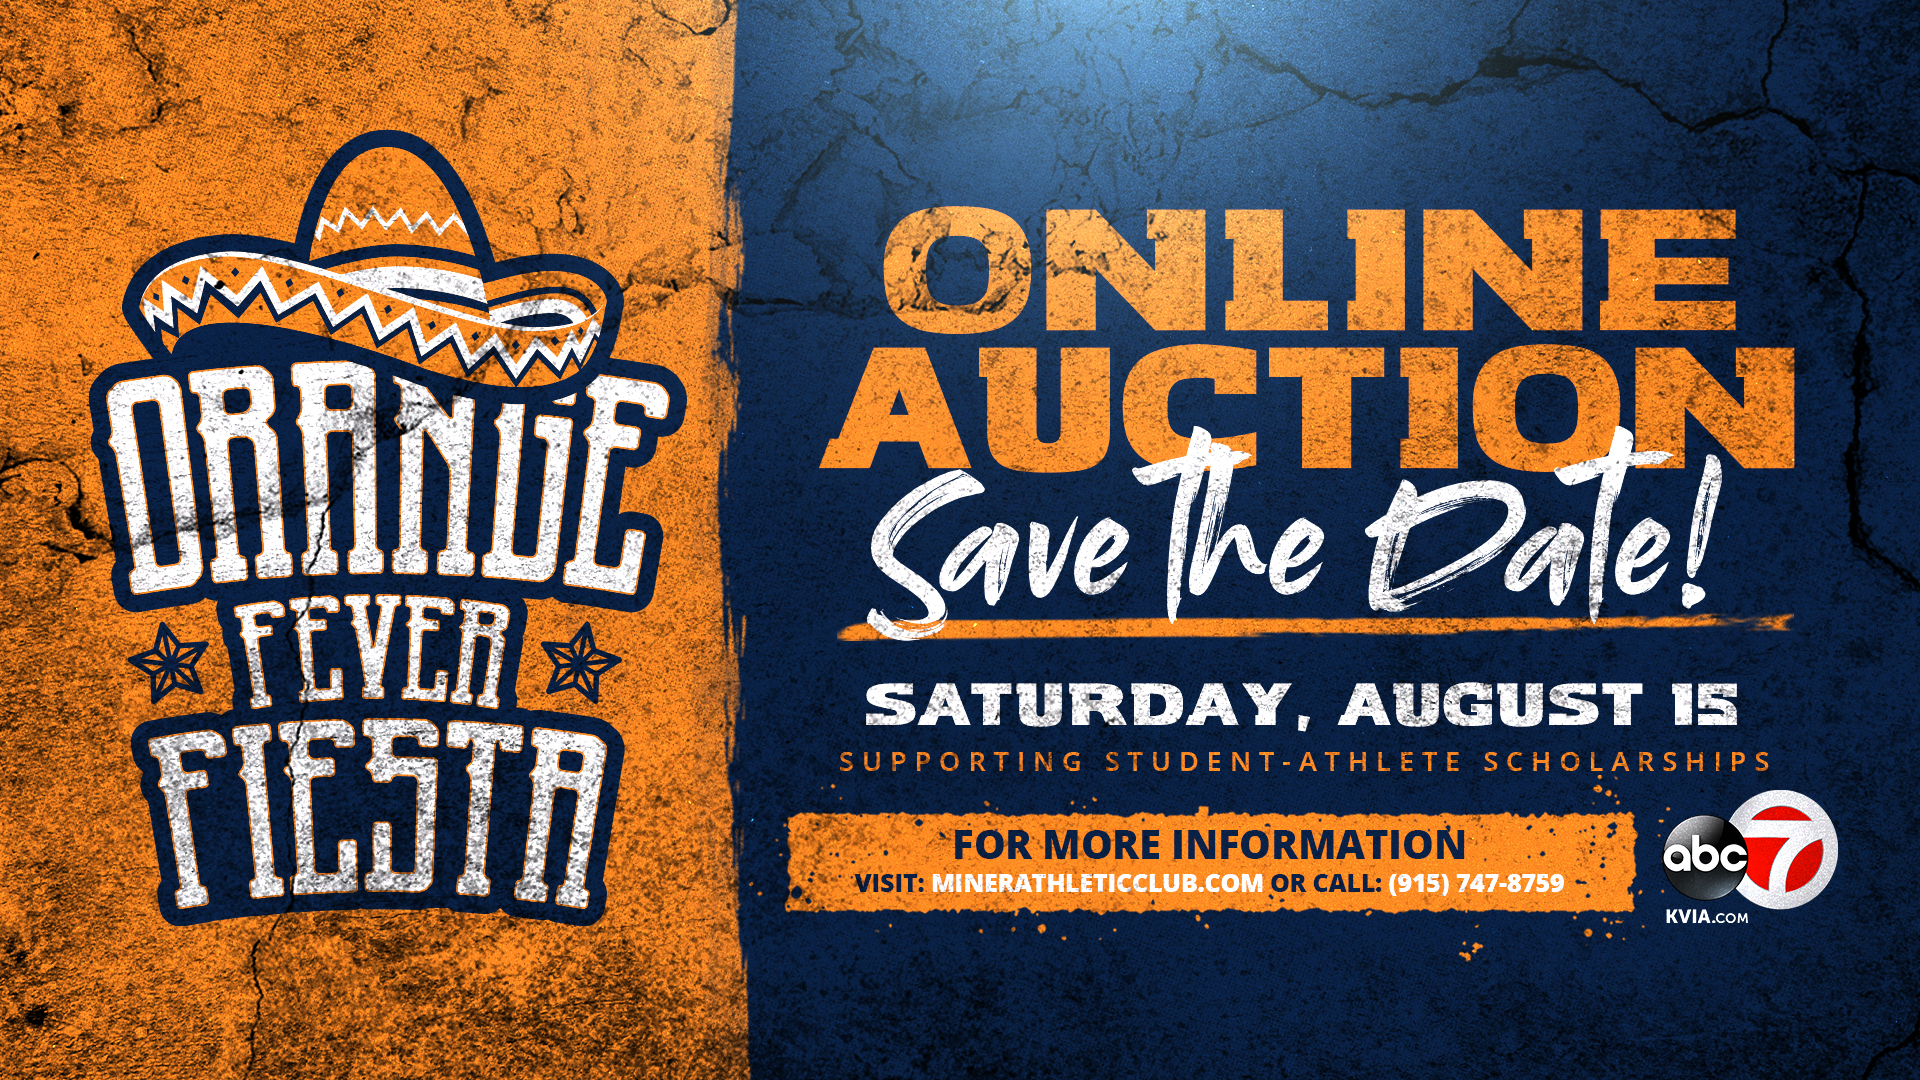 Orange Fever Fiesta set for Saturday; Bidding live now; Larry K. Durham to match up to $150K raised